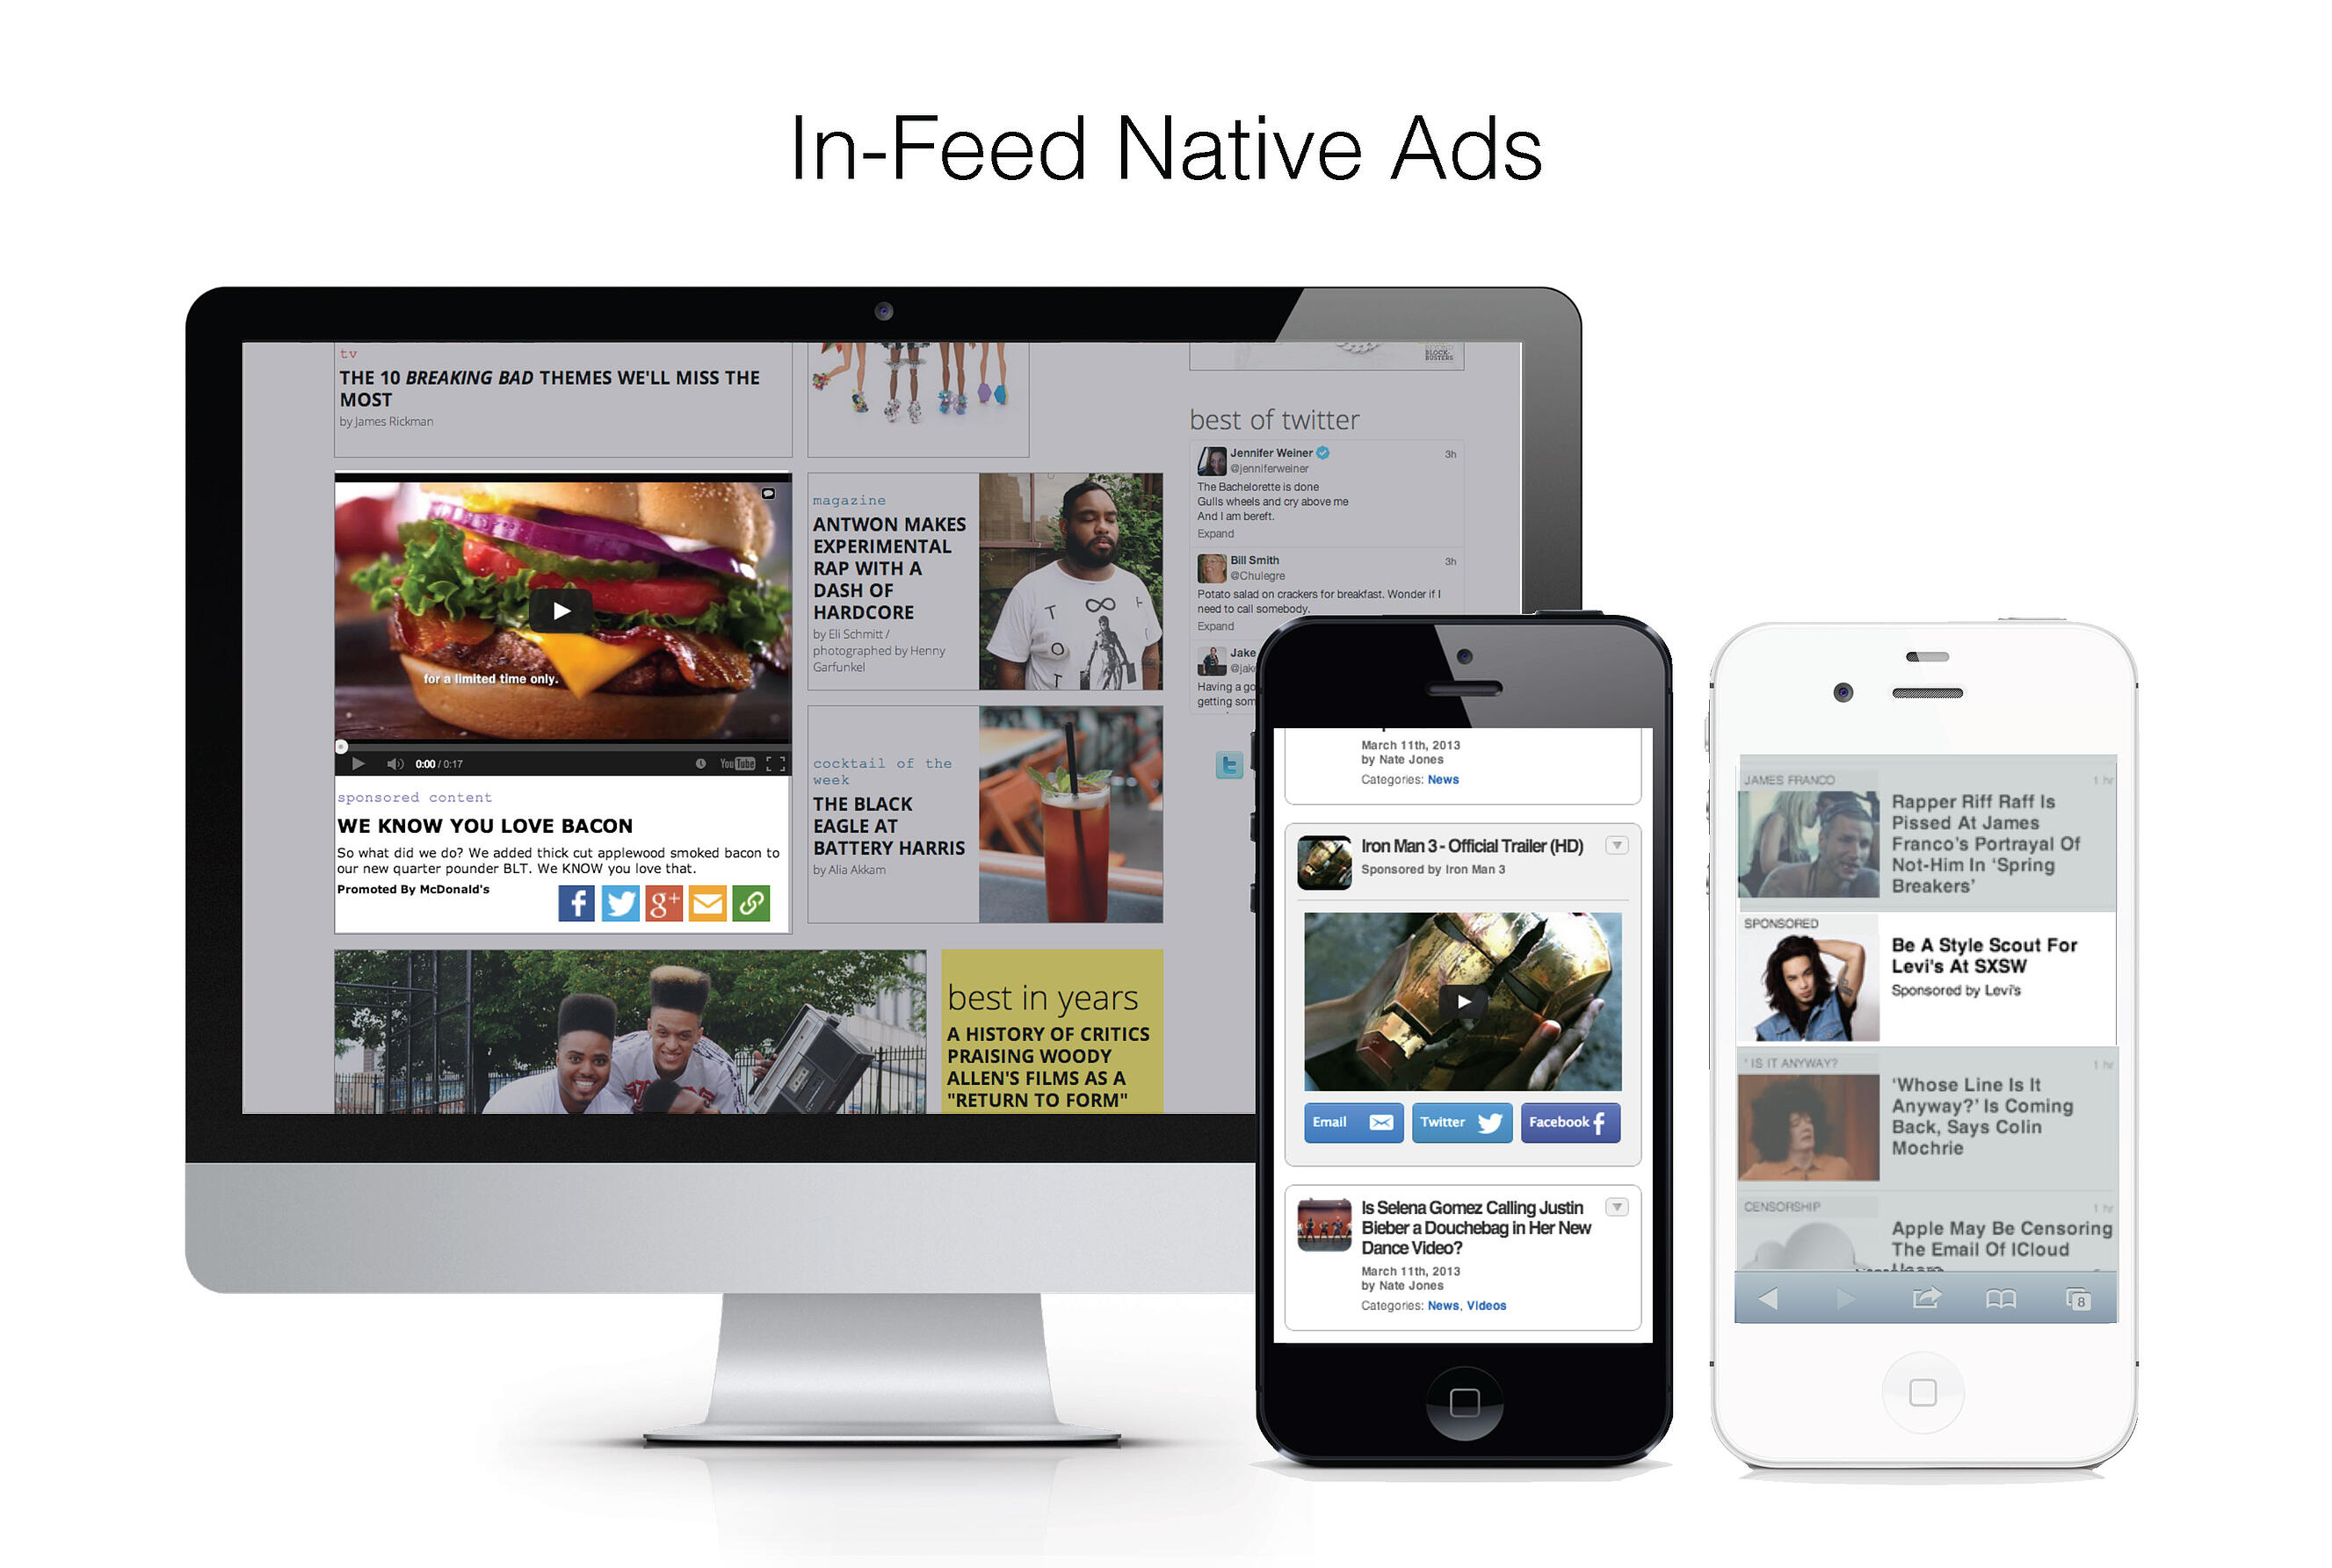 native_advertising-in-feed-ads